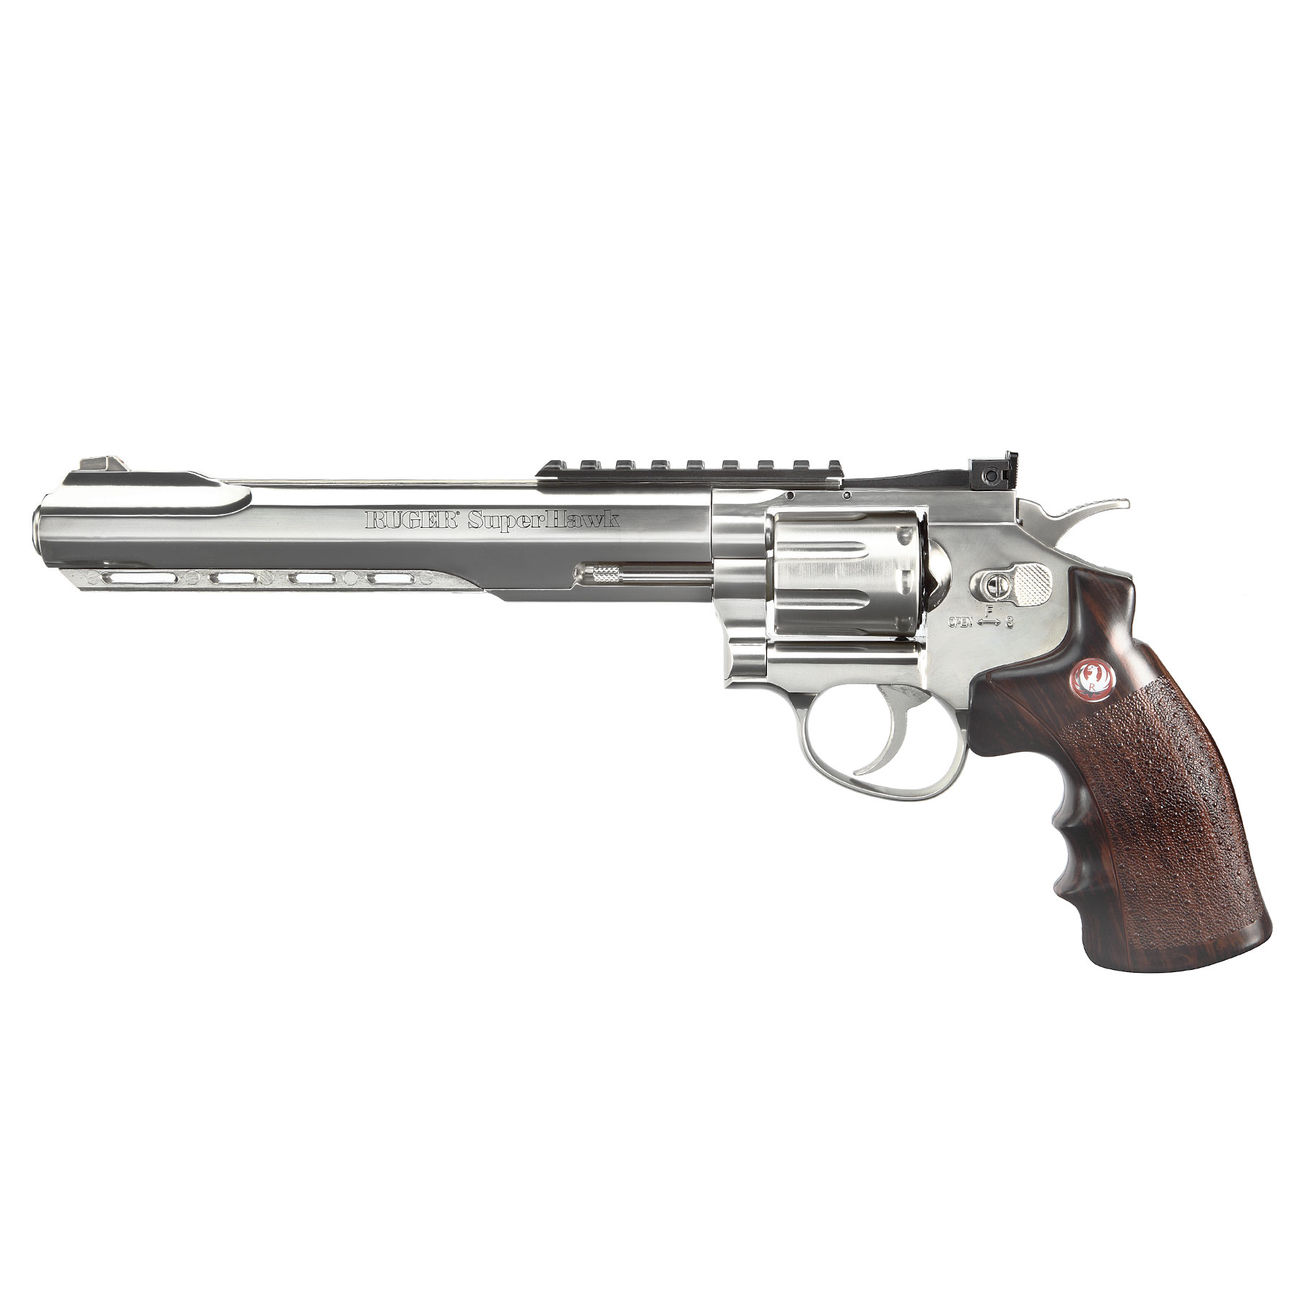 Ruger Super Hawk 8 Zoll 6mm BB CO2 Revolver chrom 1